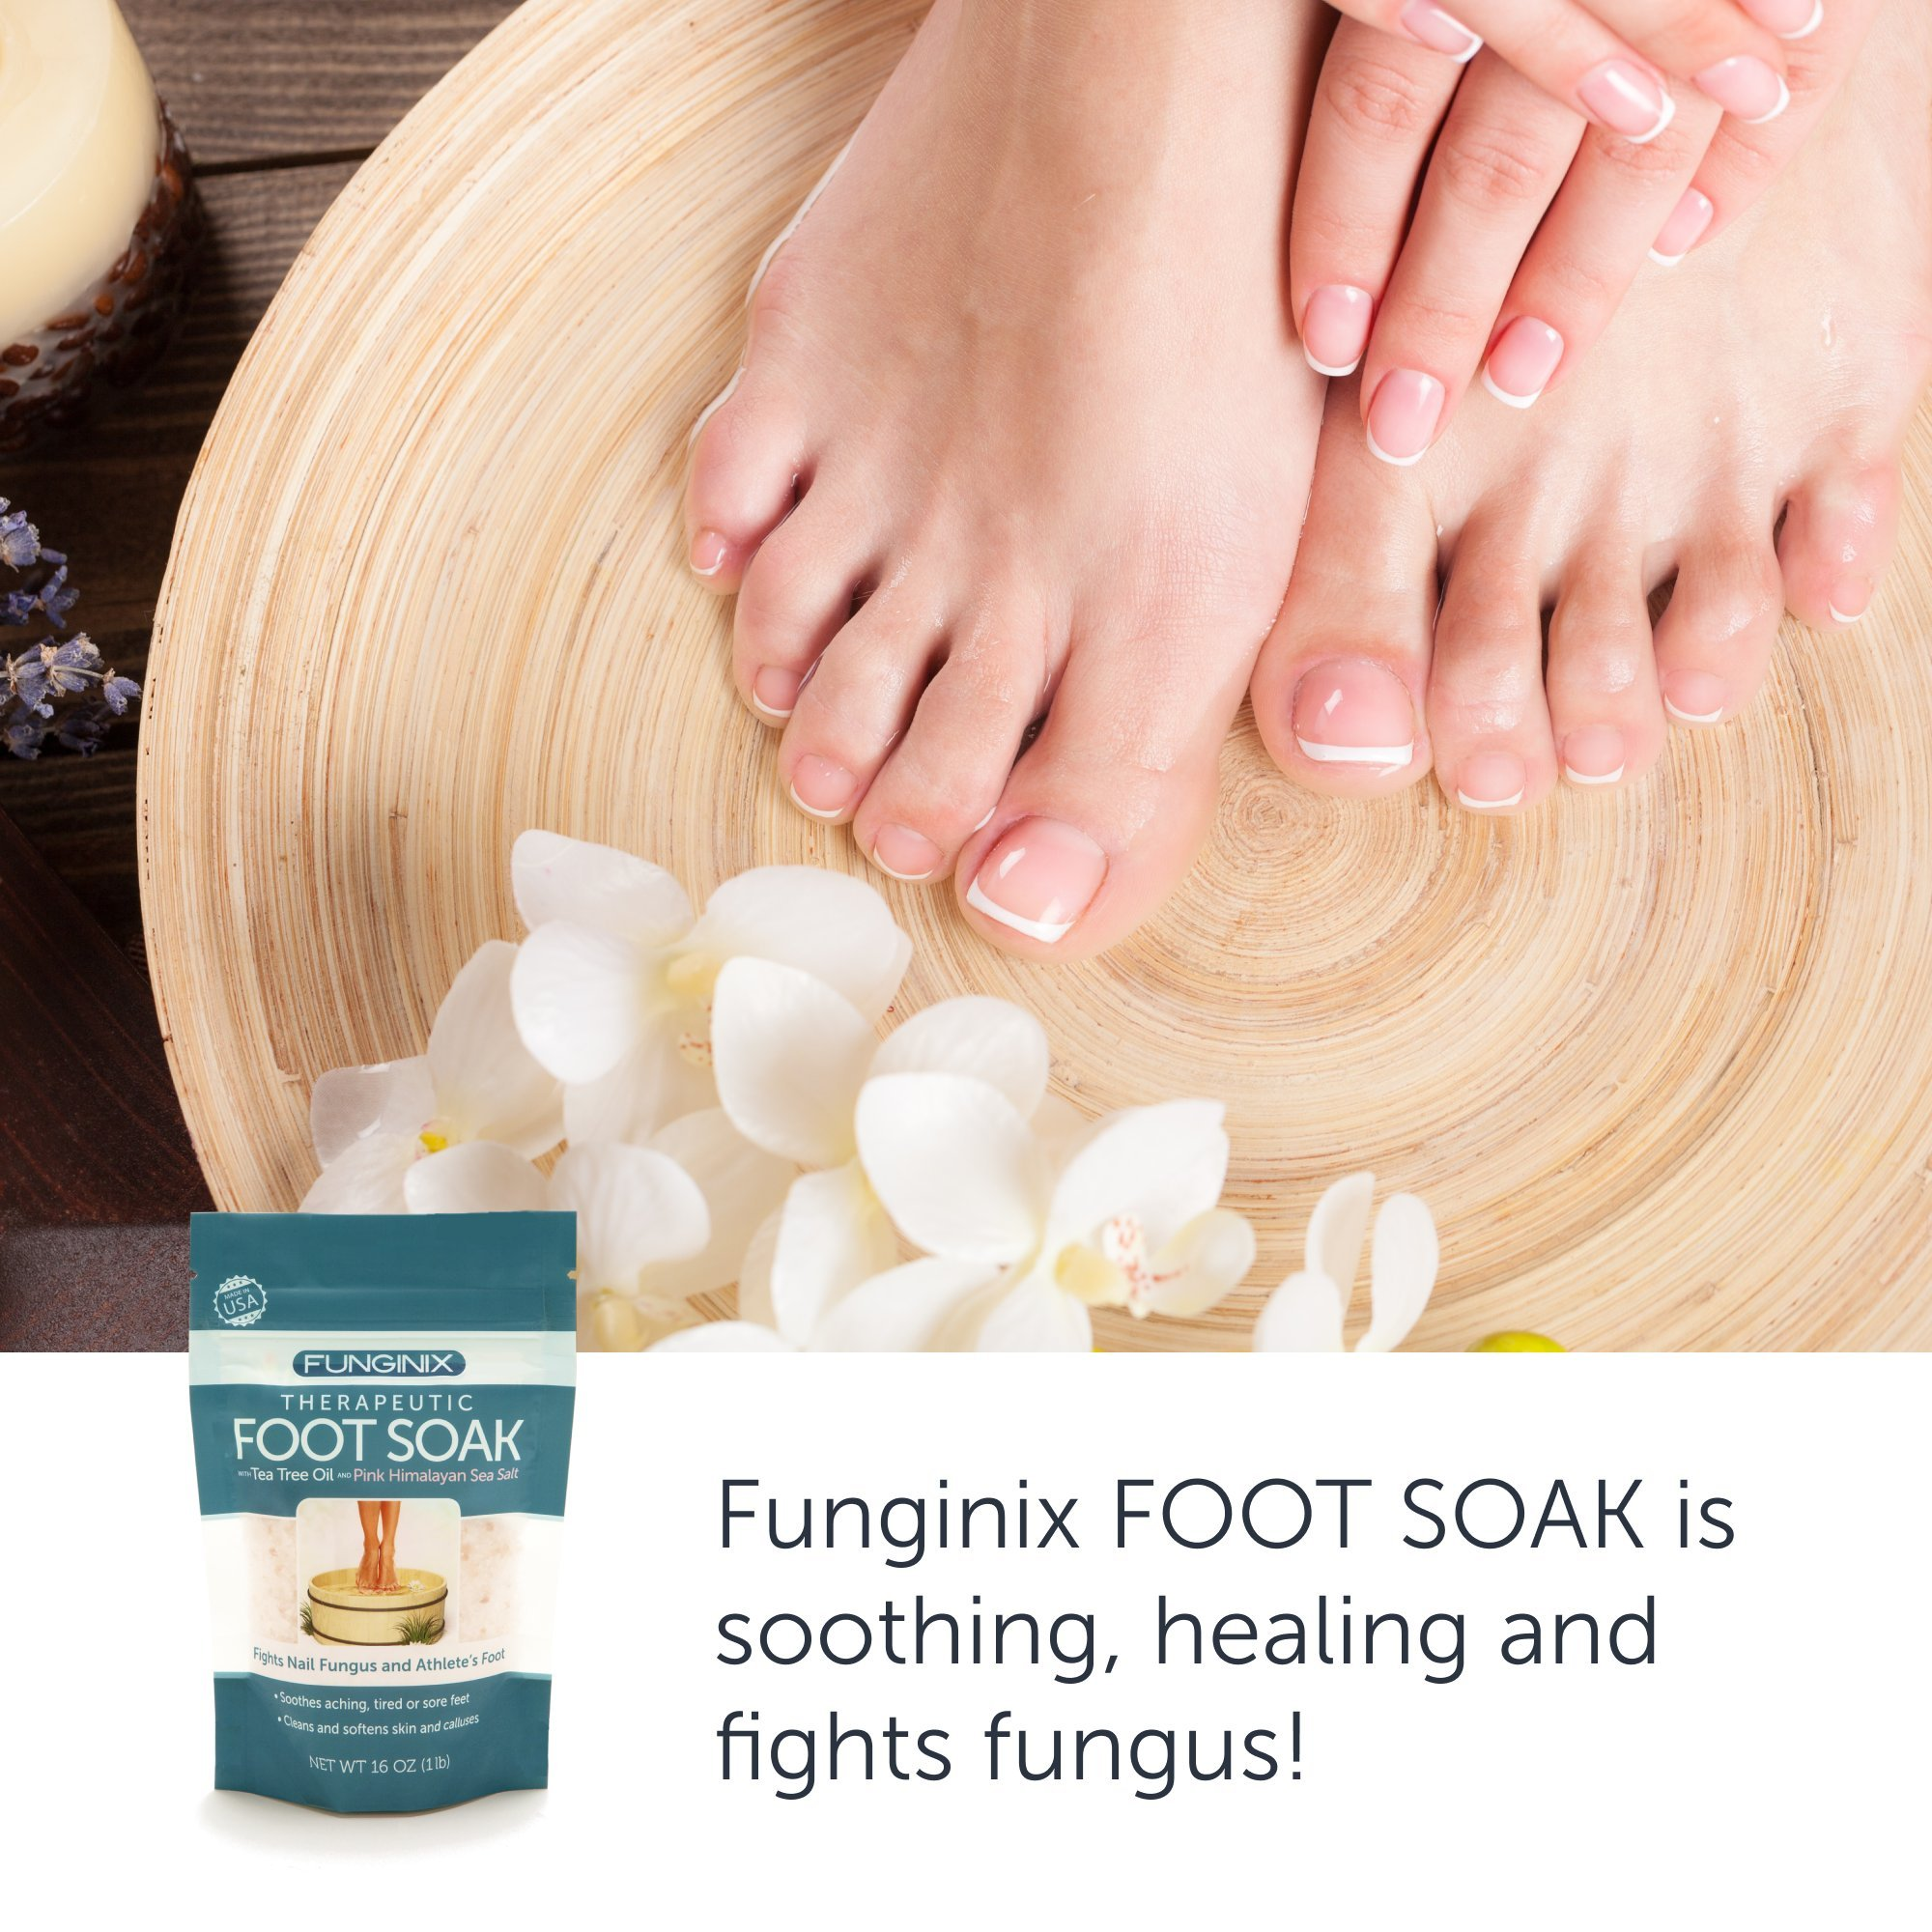 Funginix Premium Anti Fungal Foot Soak Nail Fungus Treatment with Tea Tree Oil, Himalayan Sea Salt, and Essential Oils - Treats Toenail Fungus, Athletes Foot, and Foot Odor - Foot Care for Sore Feet by Funginix (Image #3)